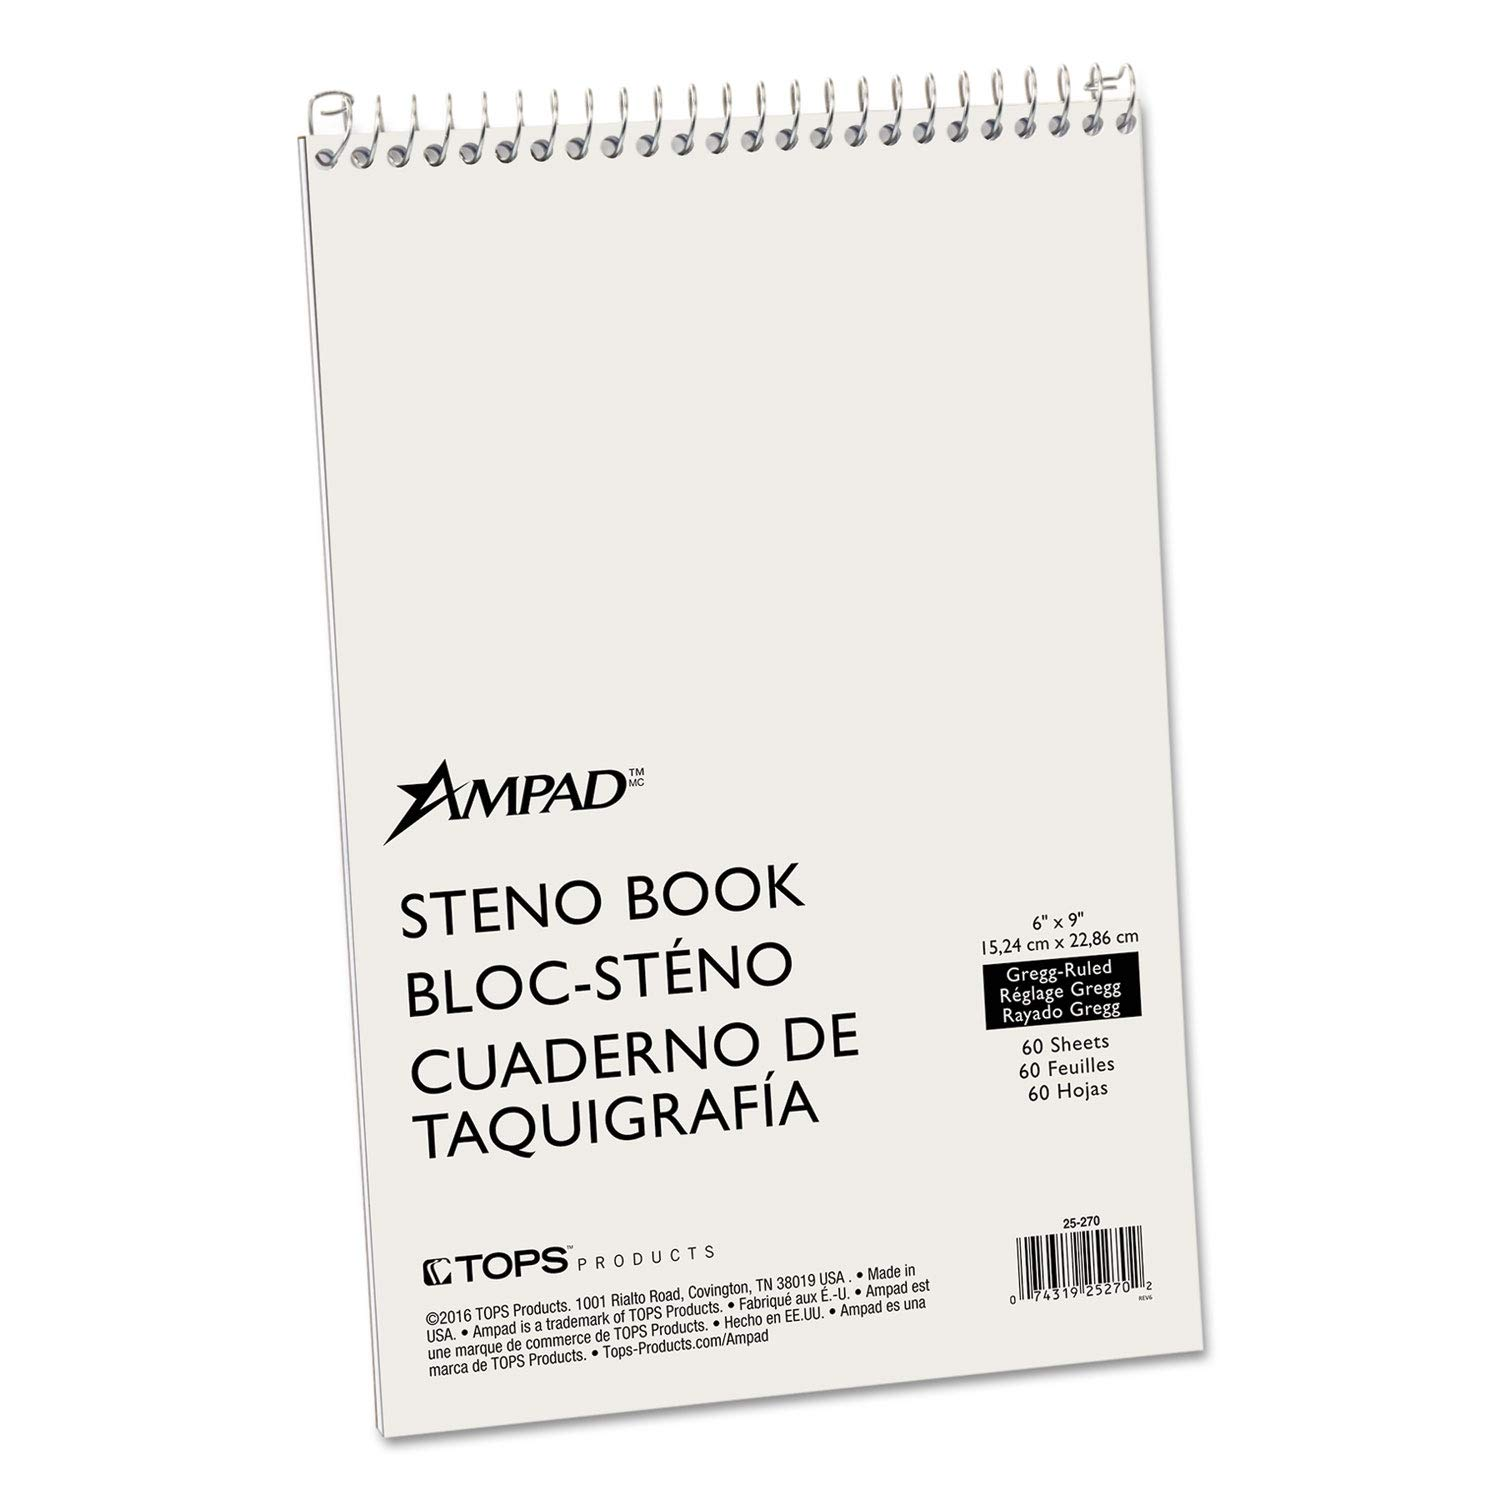 Ampad Spiral Steno Book, Gregg, 6 x 9, 15 lb, Green Tint, 60 Sheets - 25-270 (Pack of 10) by Ampad (Image #1)